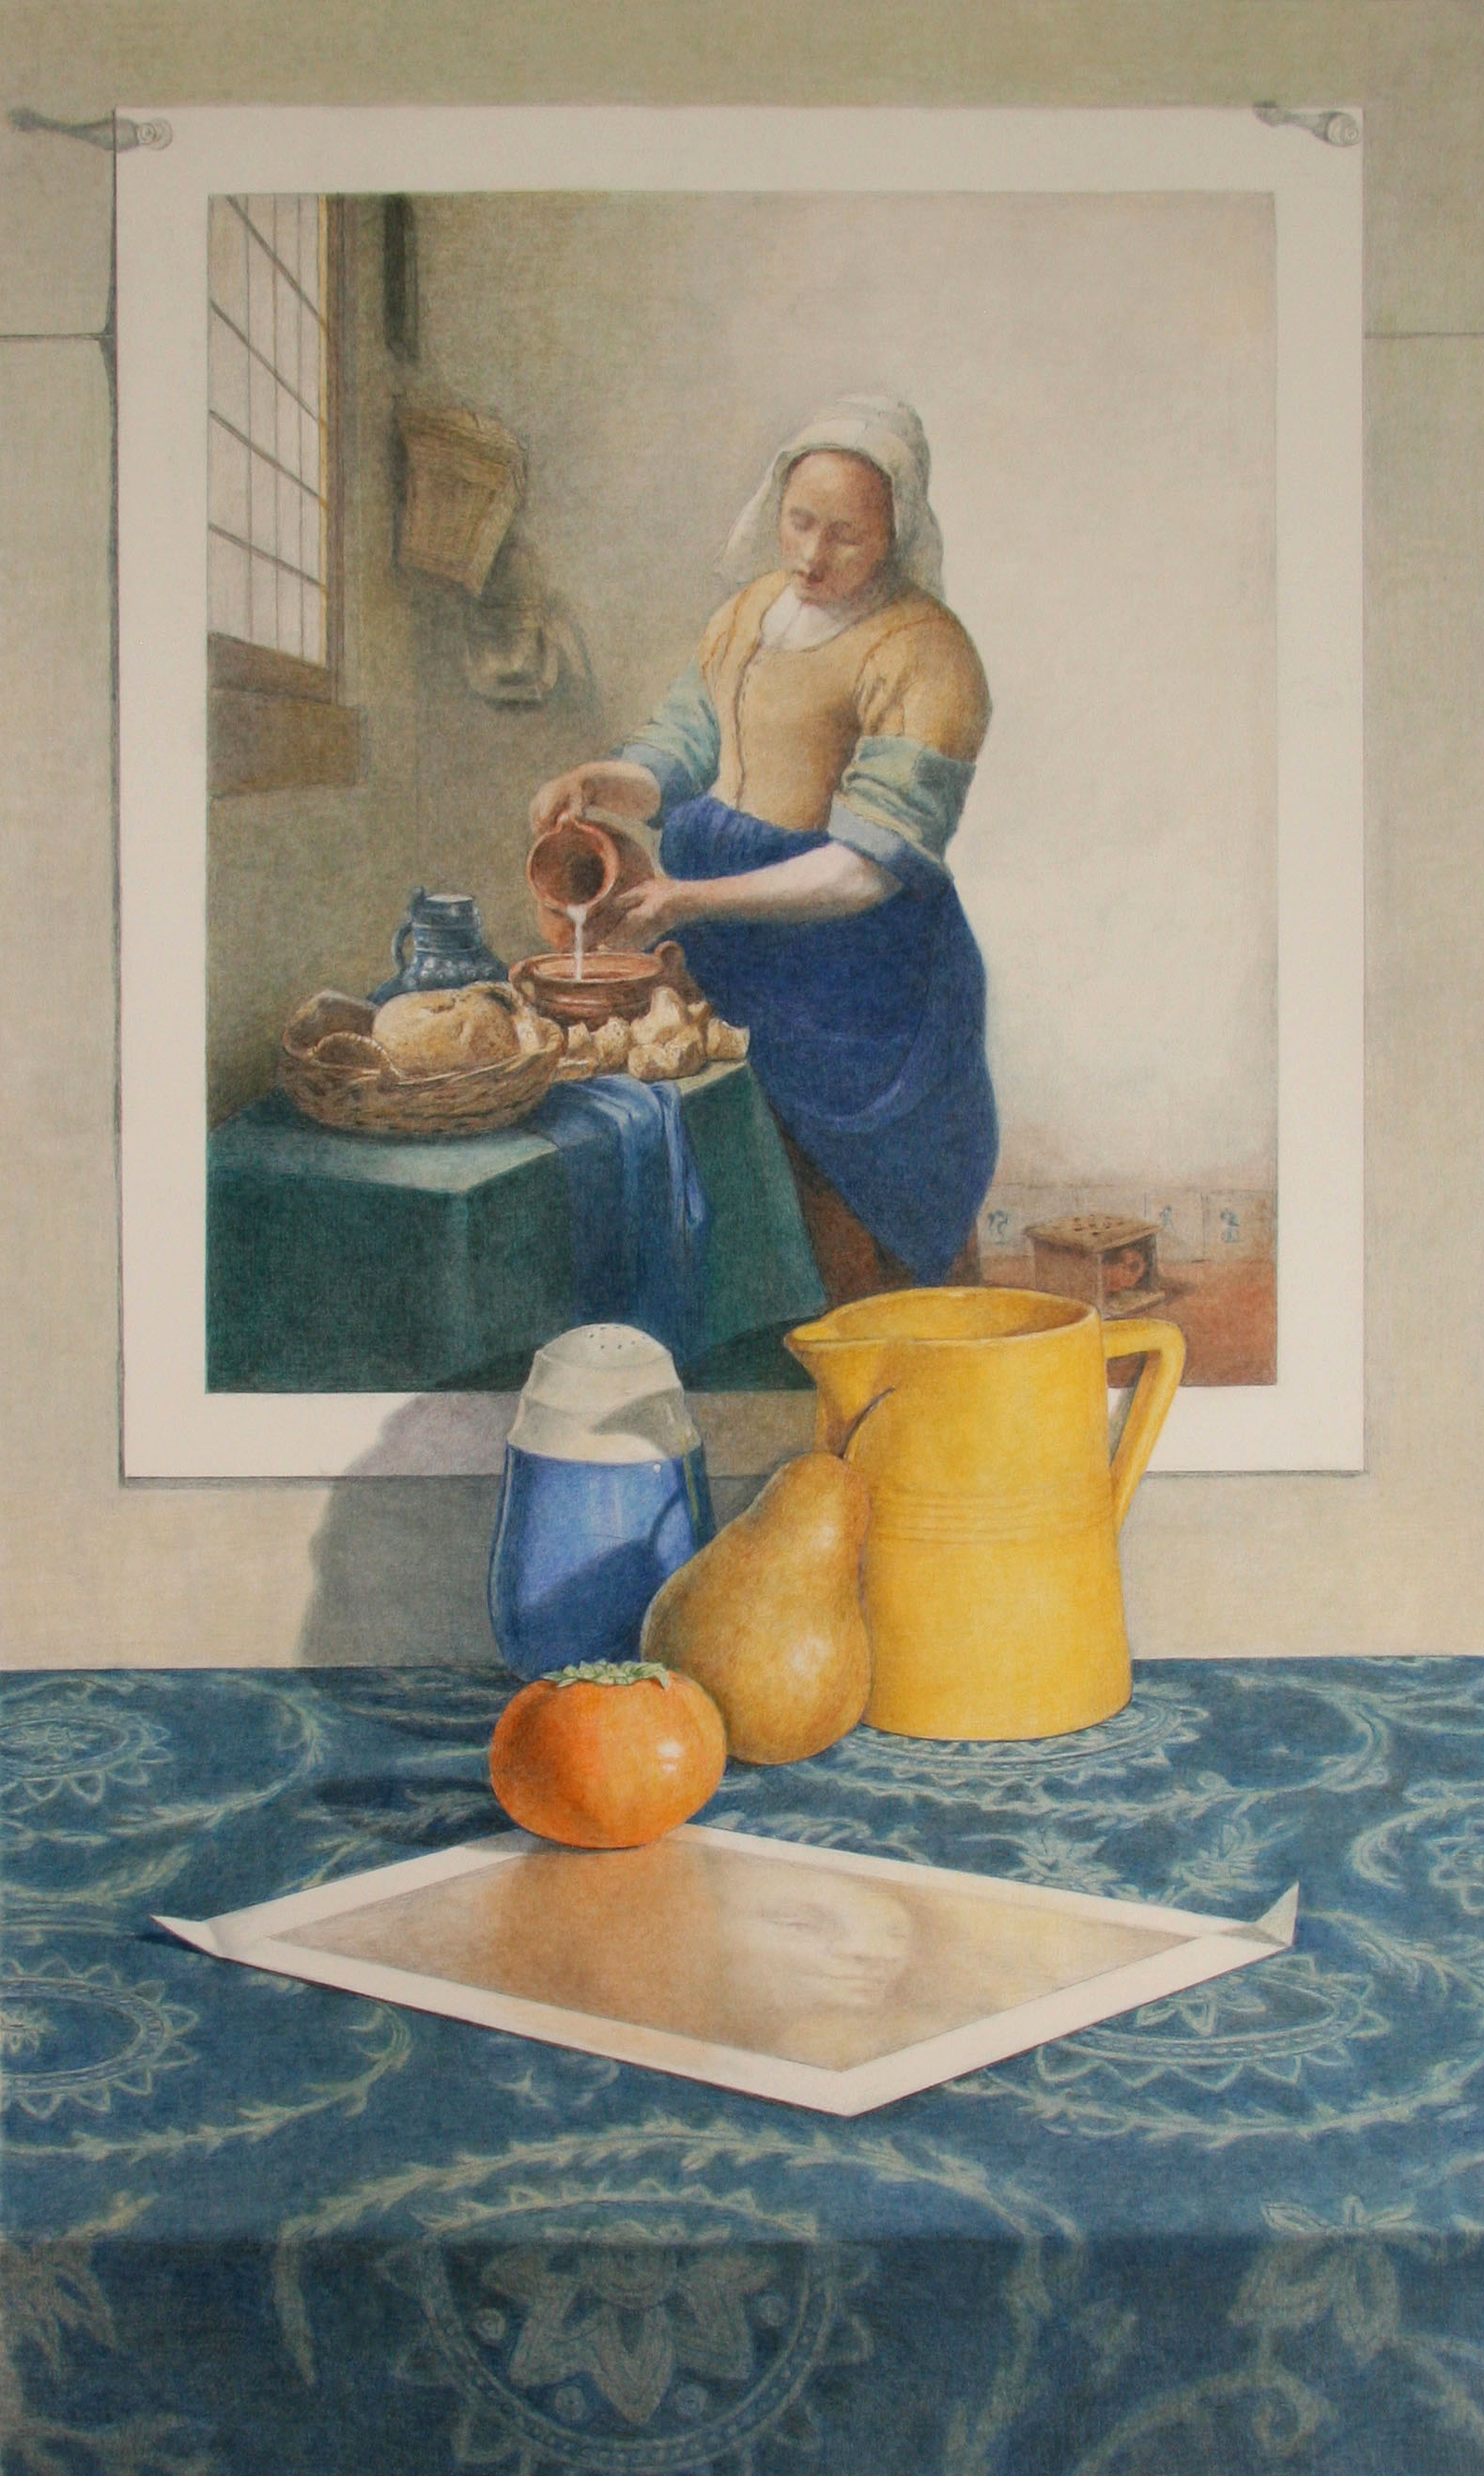 Vermeer with Yellow Pitcher